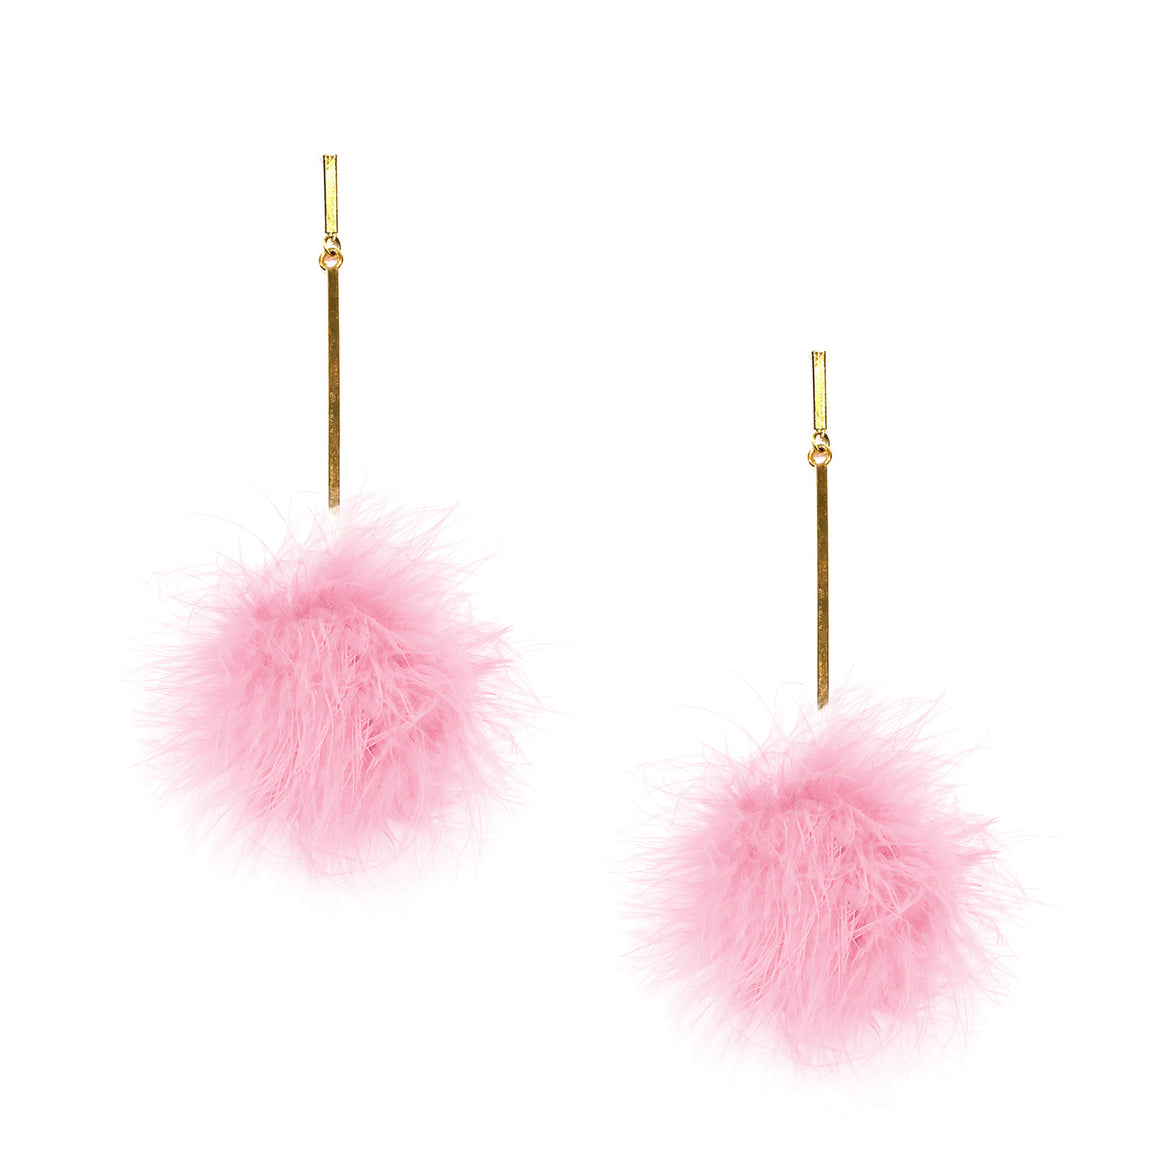 Light Pink Marabou Pom Pom Earrings, Earring, Tuleste, Tuleste